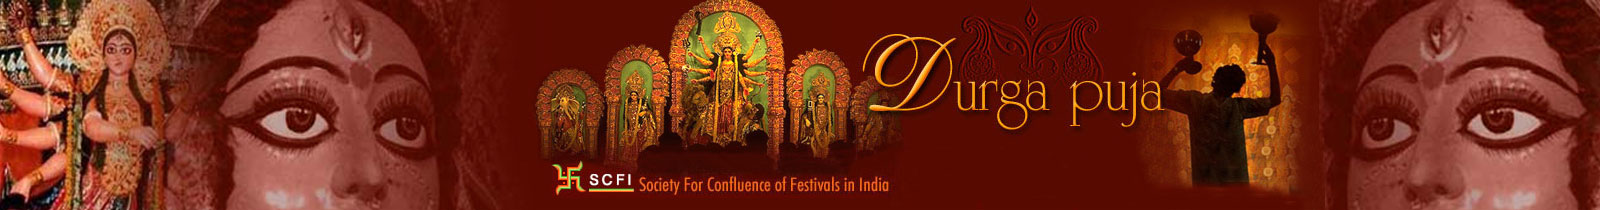 Essay on the Social Significance of Religious Festivals in India     PublishYourArticles net